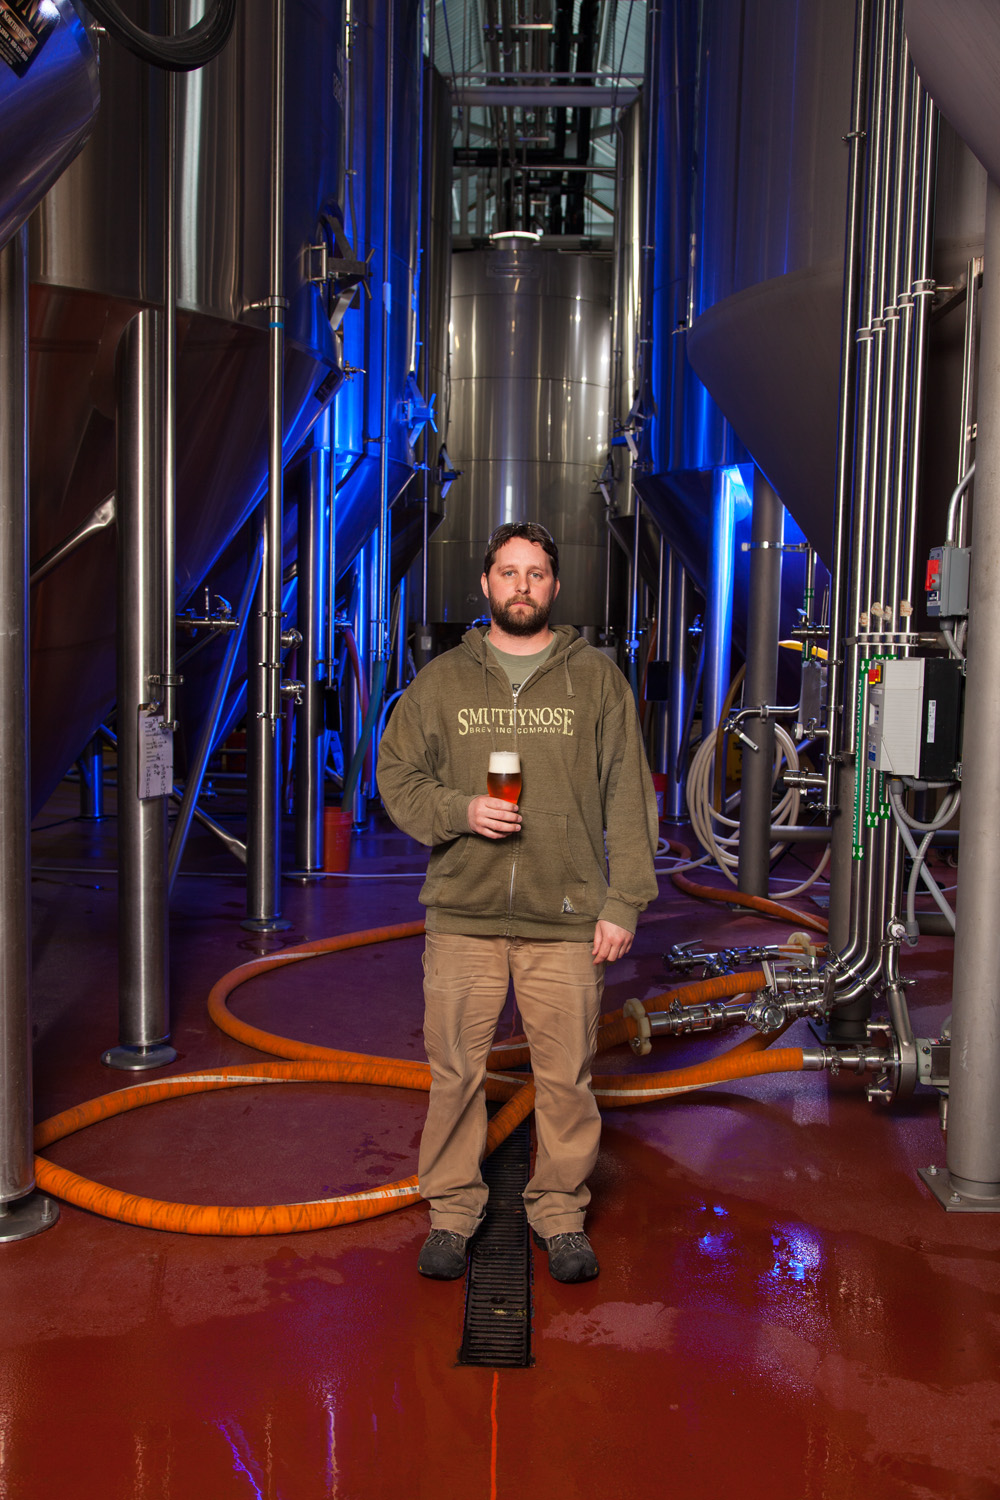 Dan Schubert, Head Brewer Smuttynose Brewing Co. Hampton, NH Established in 1994